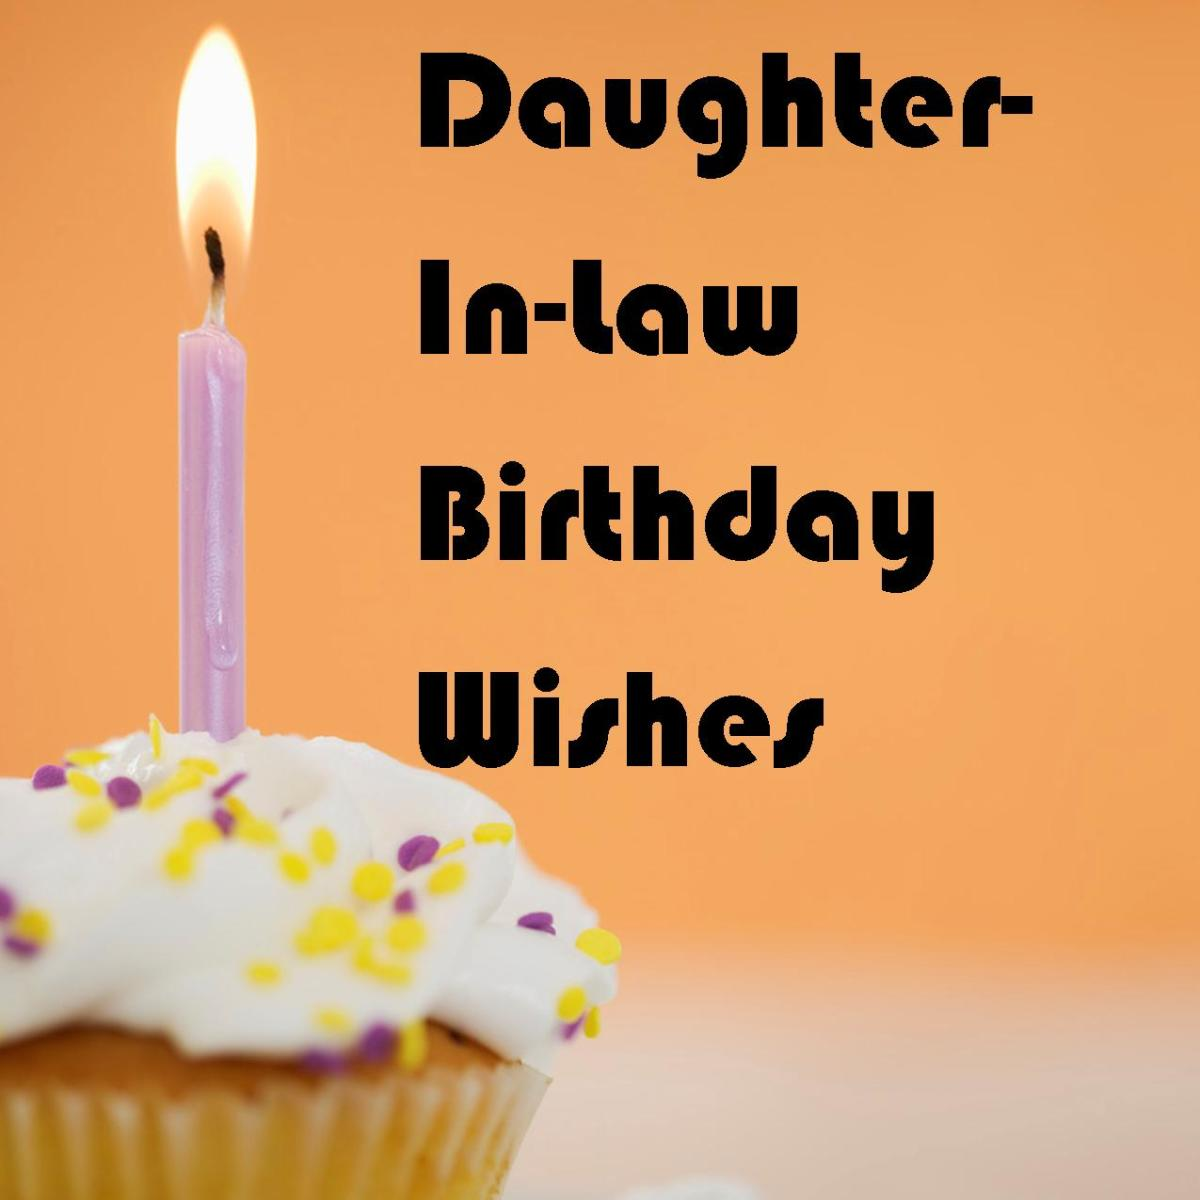 Daughter in law birthday wishes what to write in her card holidappy bookmarktalkfo Images